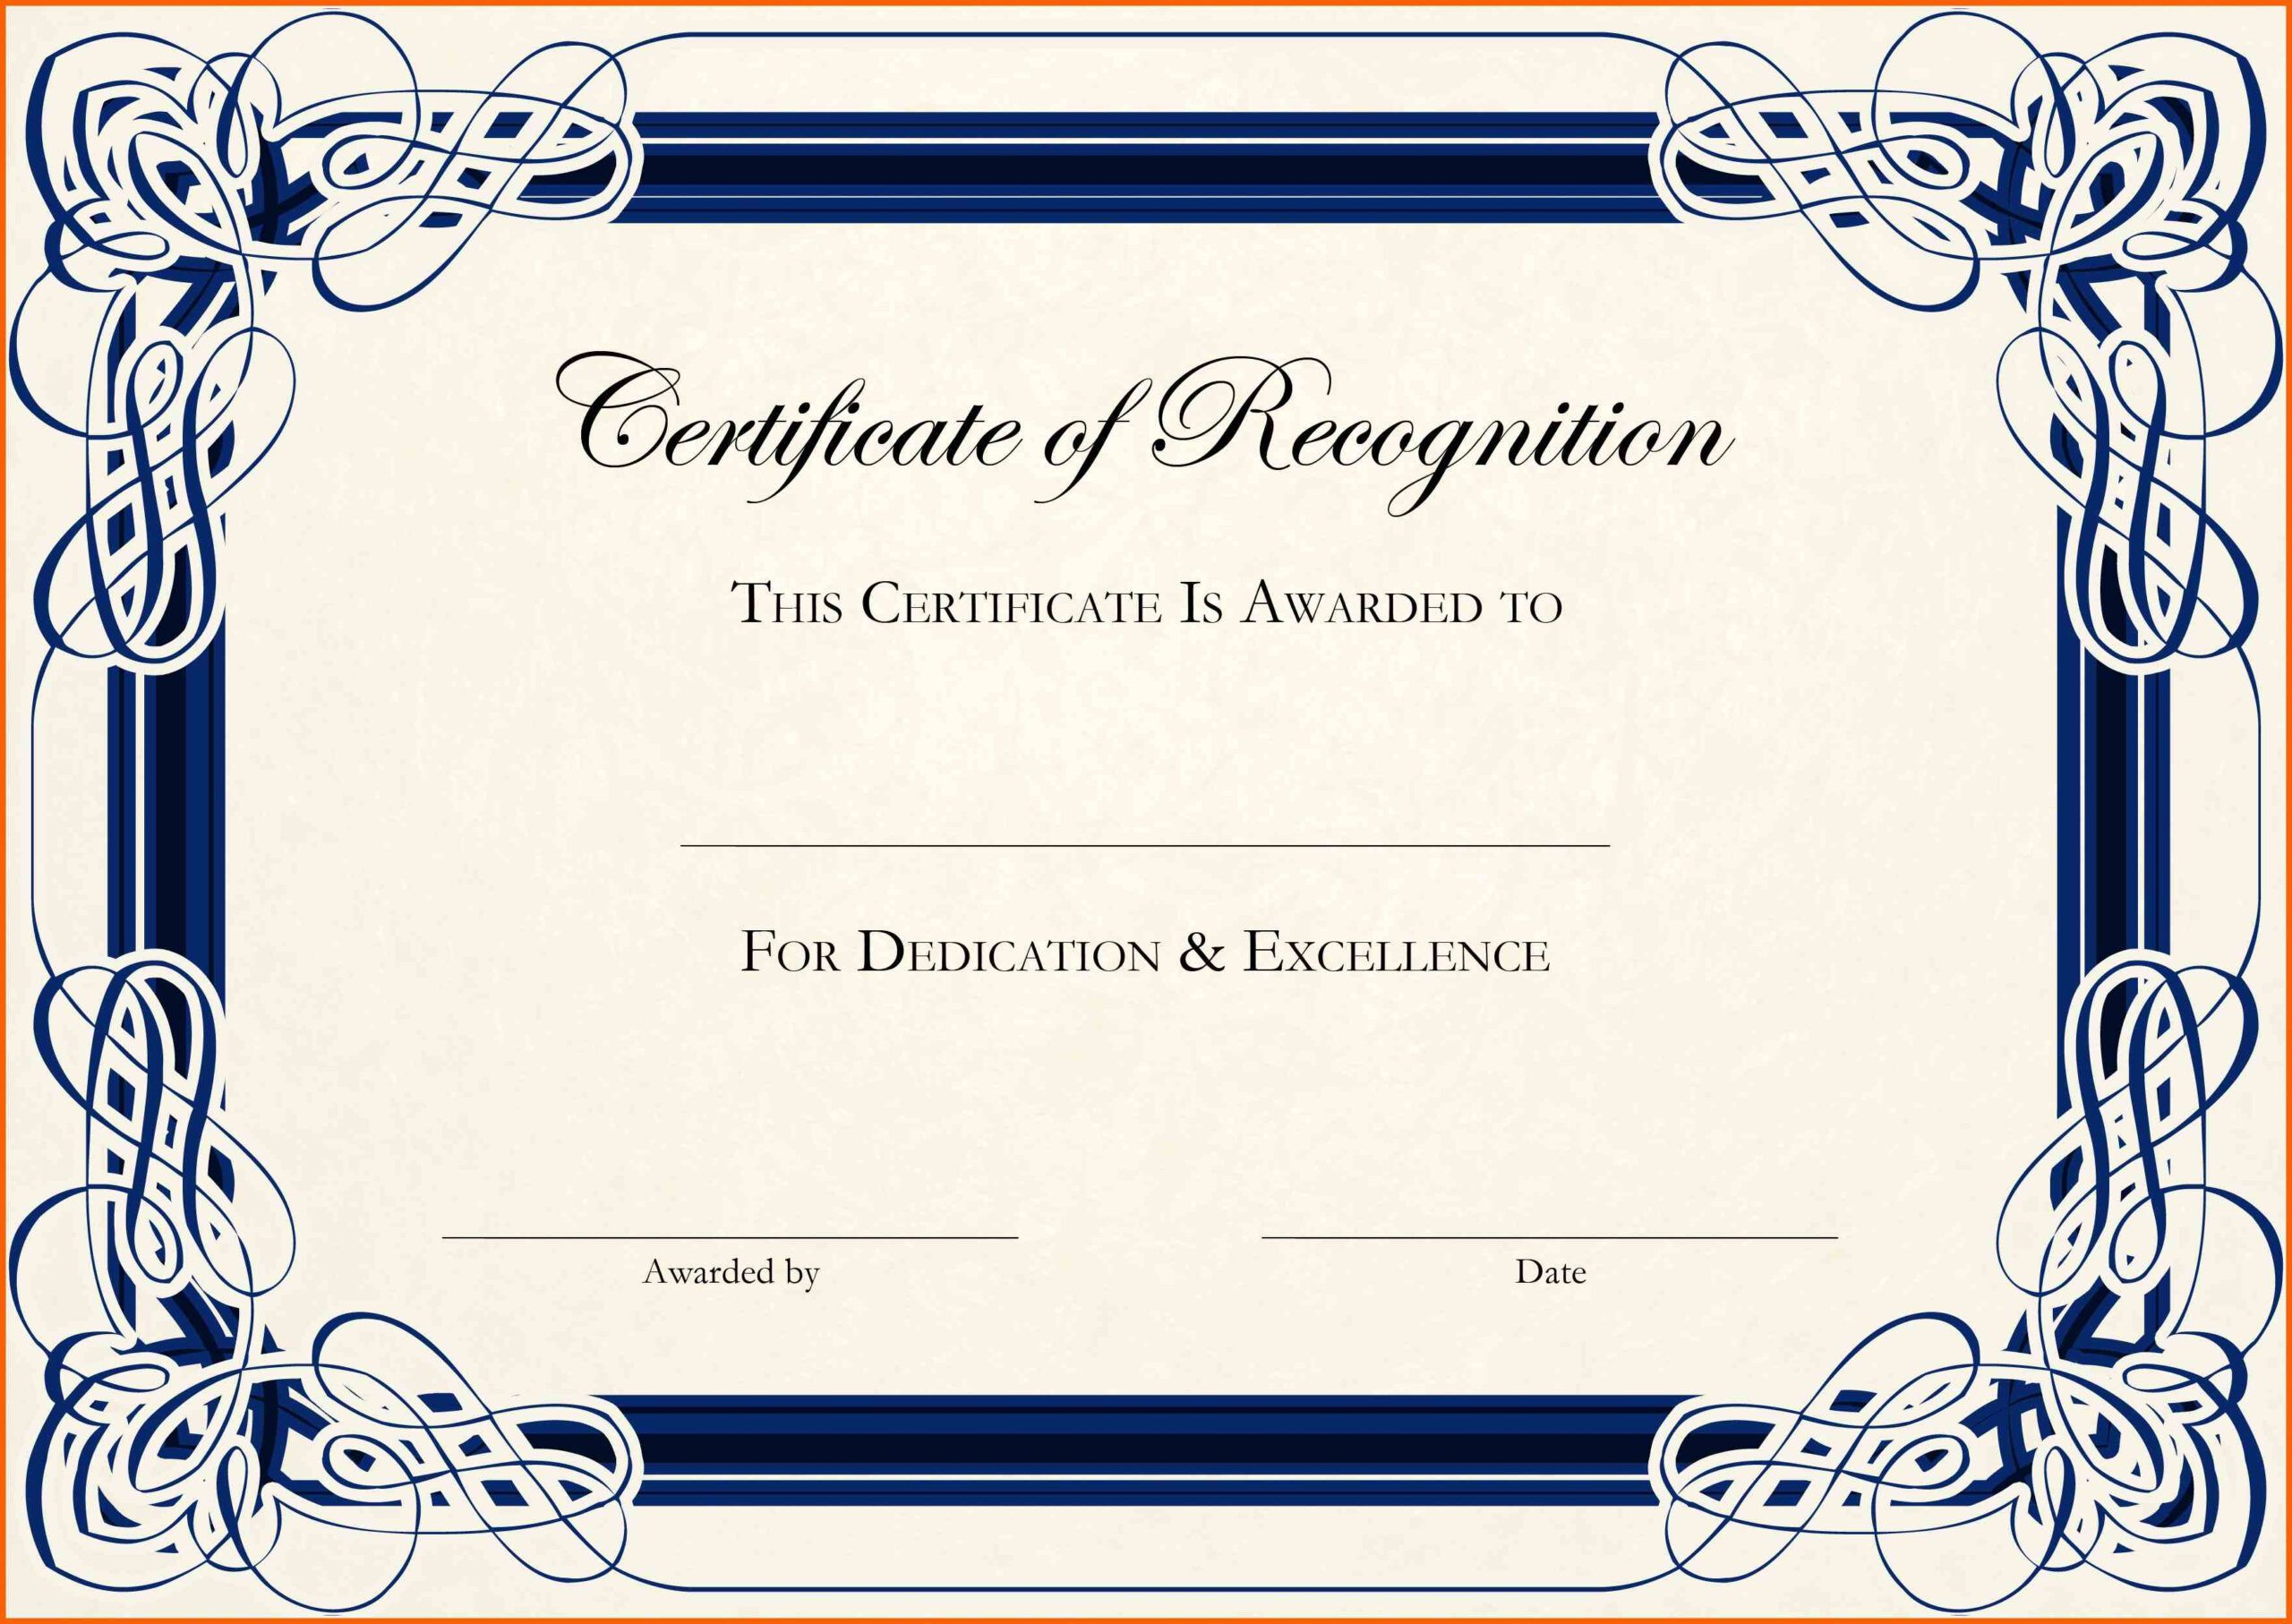 001 Formidable Certificate Template For Word Concept  Award 2007 MFull